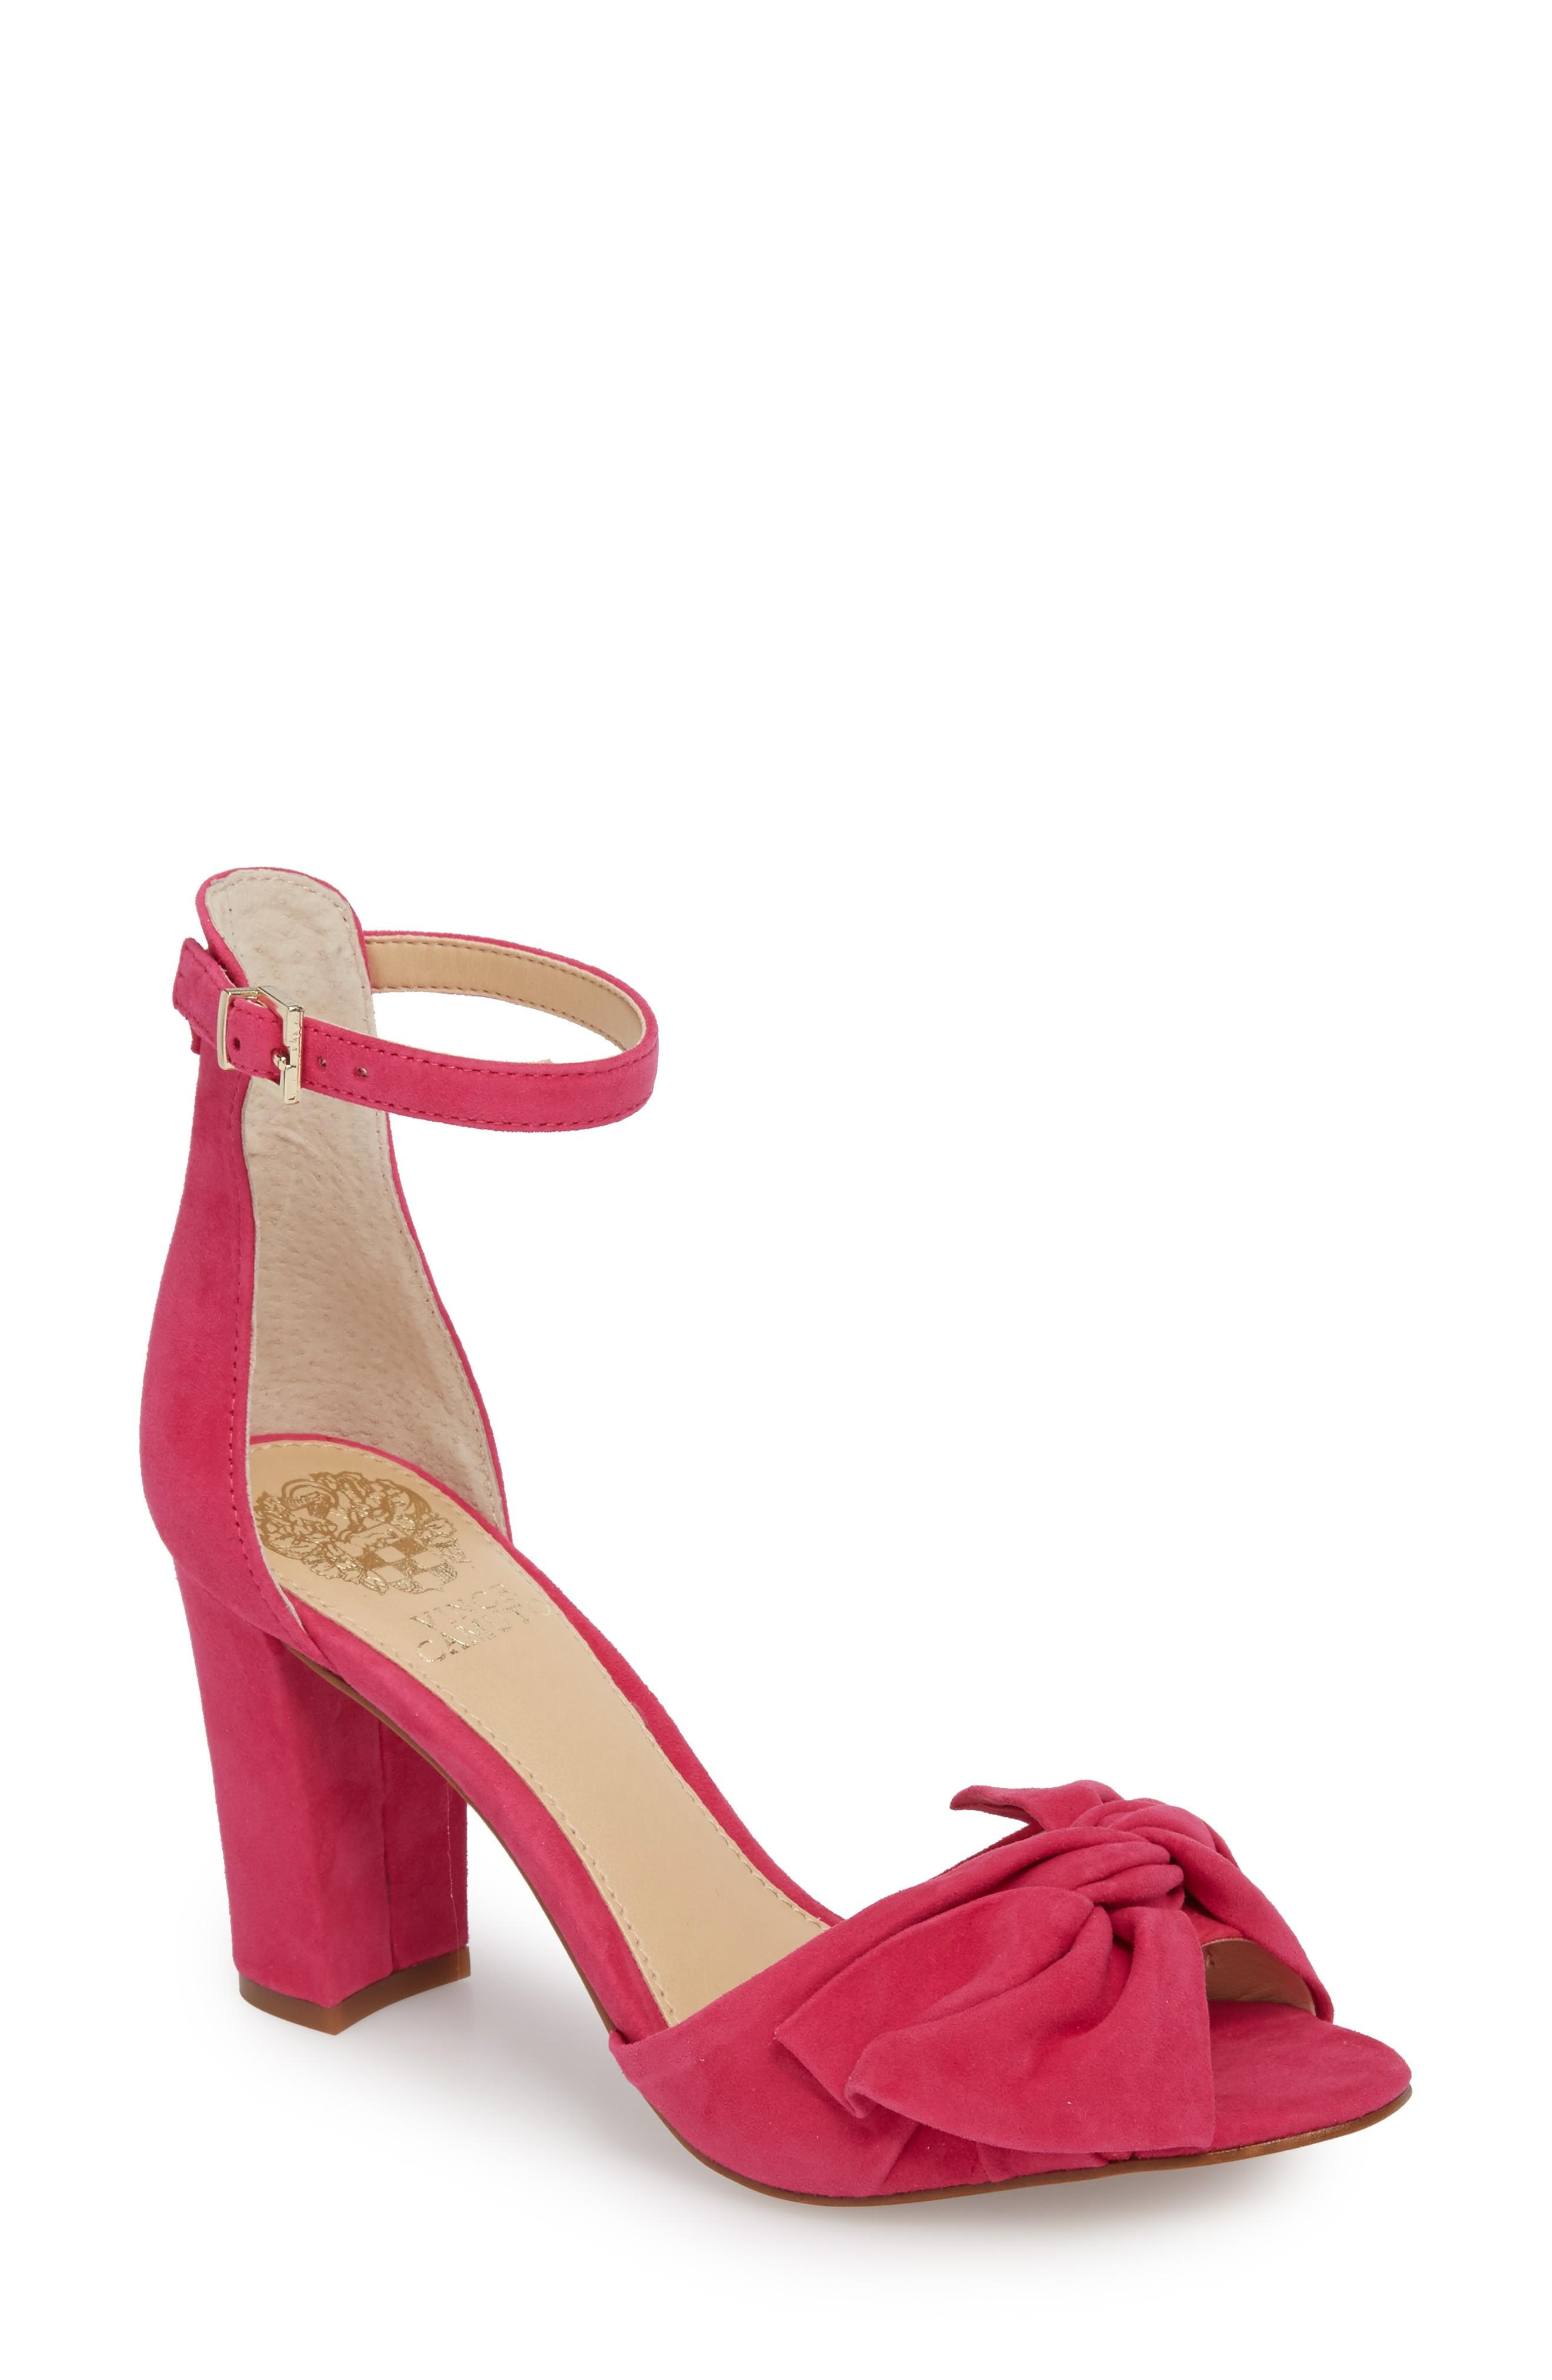 ad54c2959500 A knotted bow adds soft dimension to an otherwise minimalist strappy sandal  lofted by a wrapped block heel. Style Name  Vince Camuto Carrelen Block Heel  ...